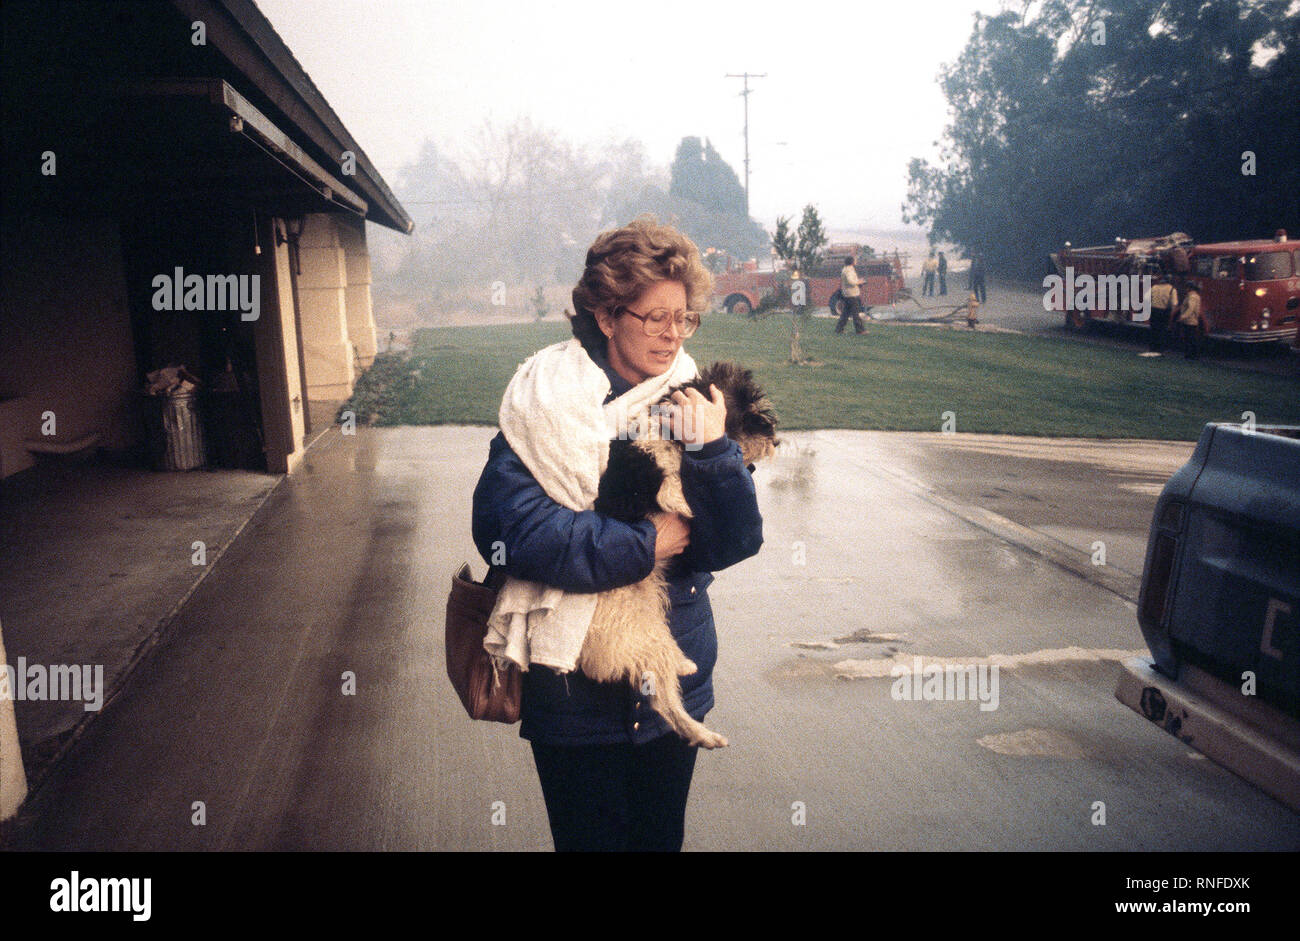 A resident flees from a house fire with her dog during the four-day Panorama brush fire, which started in canyons north of town and has been whipped out of control by 40-50 mph winds. Stock Photo